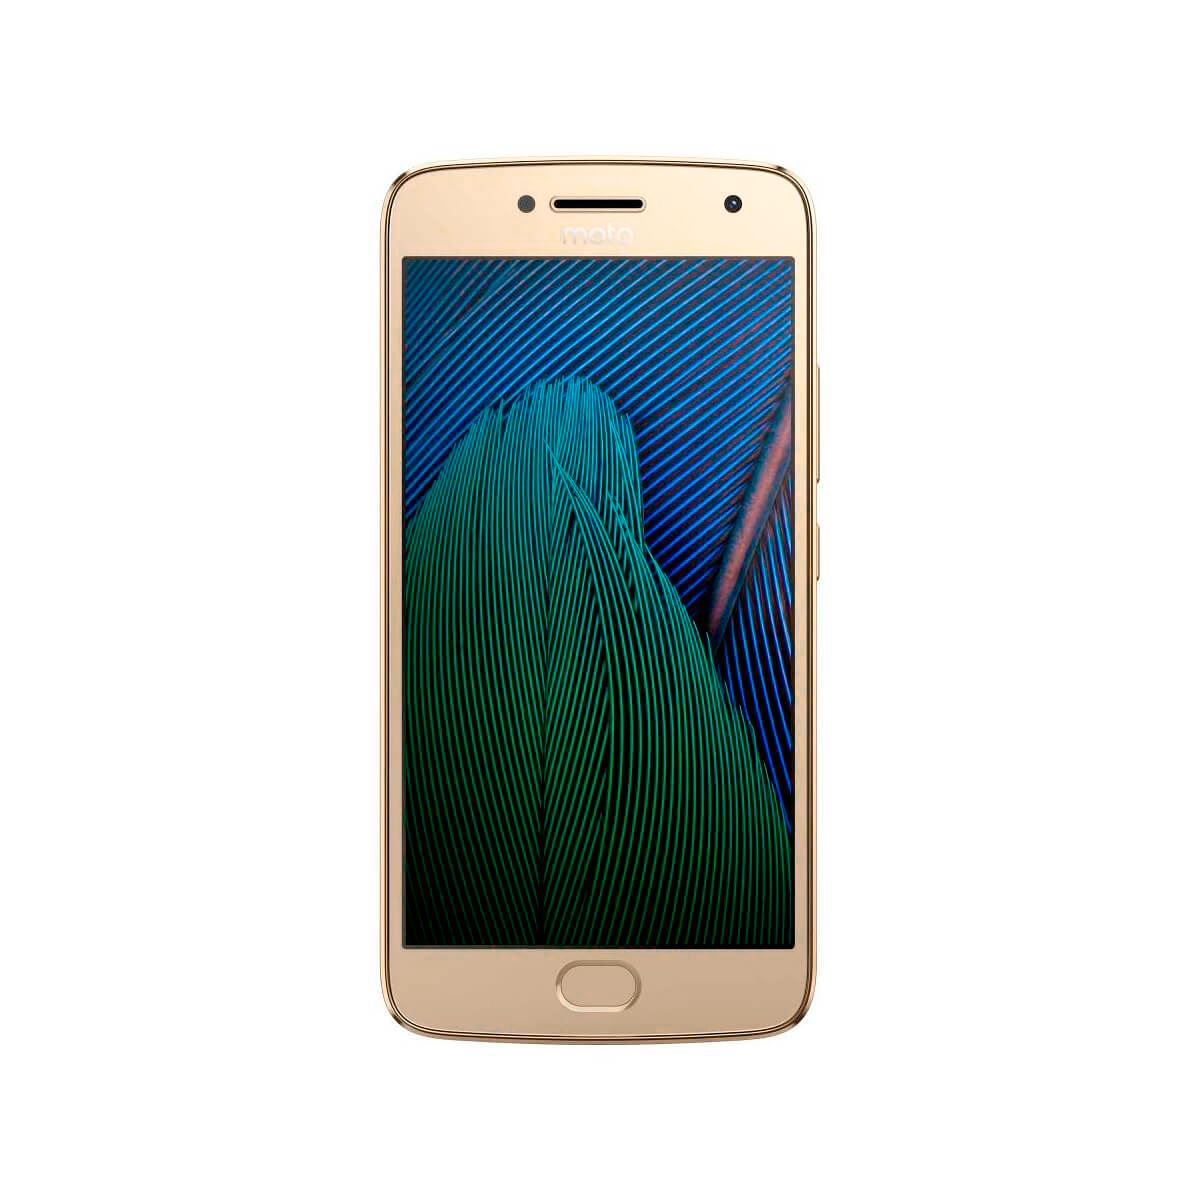 Celular moto g5 plus xt1680 color dorado r9 (telcel)  - Sanborns